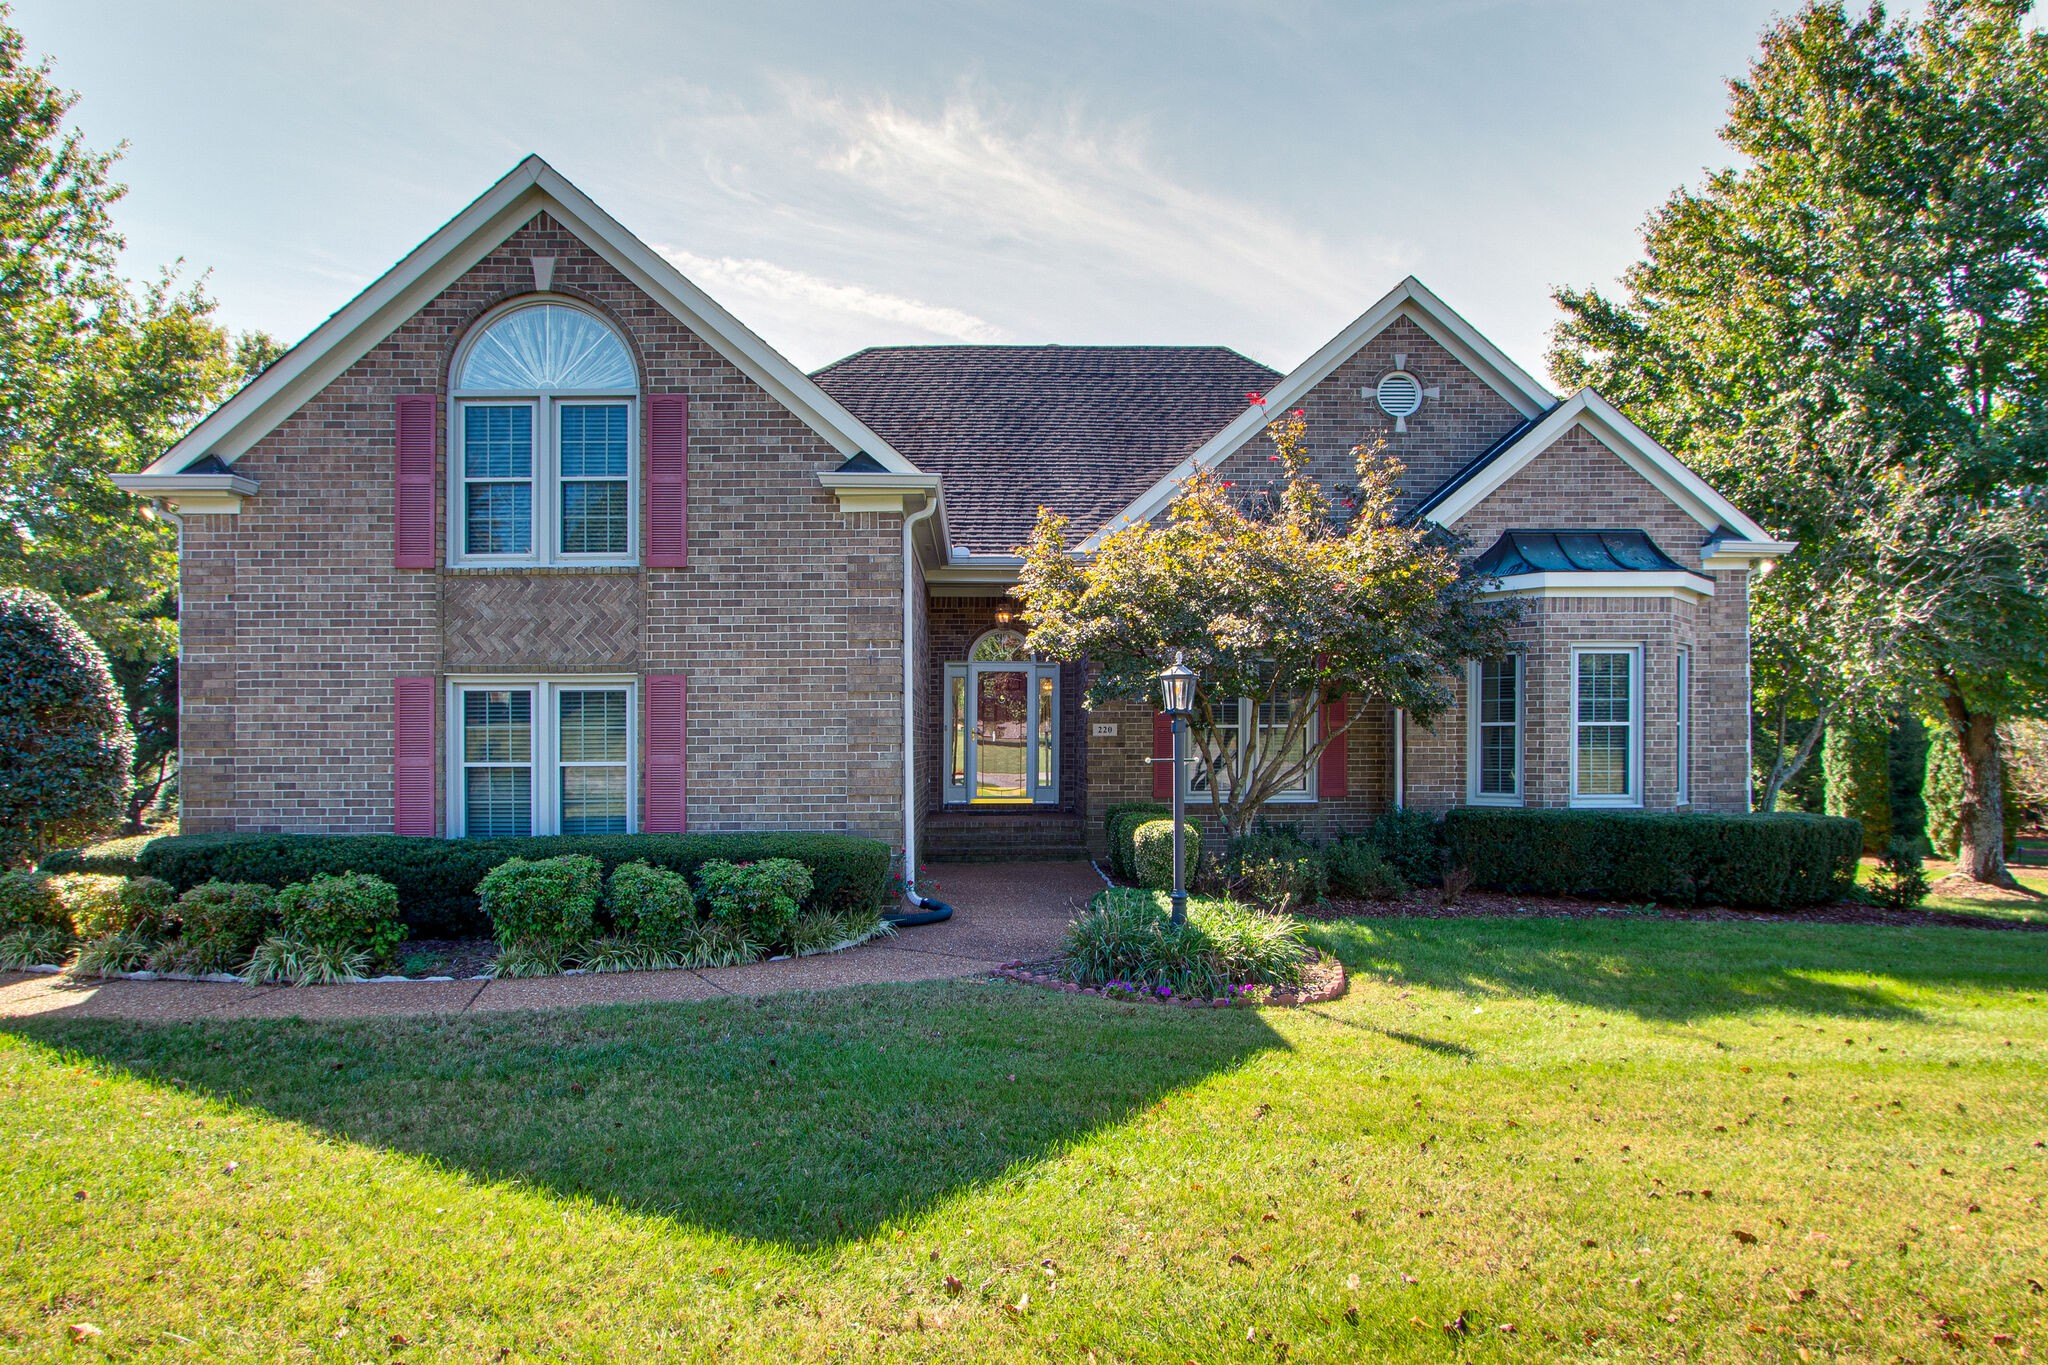 """Beautiful, one-owner, all-brick Ivy Glen home...Knockout kitchen with quartz counters...Gorgeous woods...Four beds...3 on the main level...Two owners' suites...one up and one down...Incredible sunroom...Pass/fail inspections...Sold """"as-is""""...Offers due by Sunday, 10/24/2021, by 8 p.m. with a response time of Monday, 10/25/2021, at 8 p.m."""